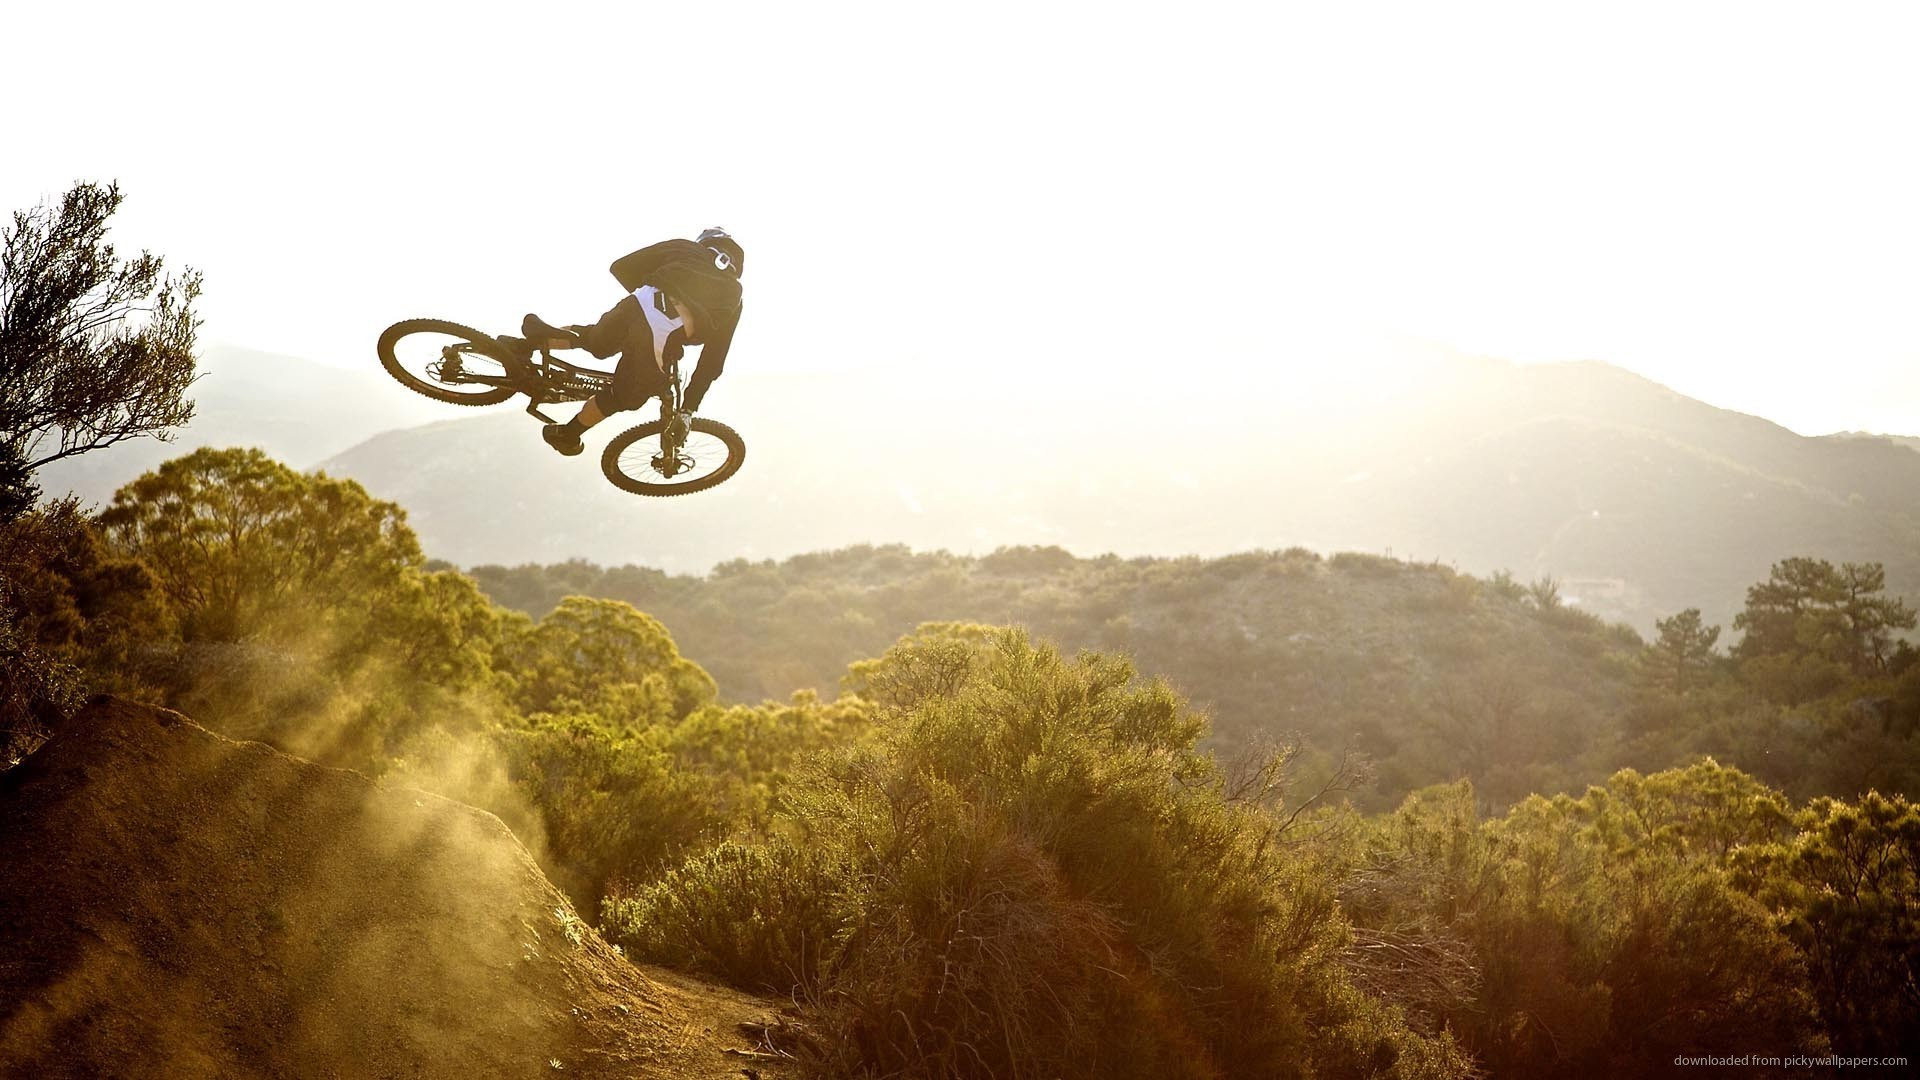 Downhill Wallpaper 001 Adorable Wallpapers